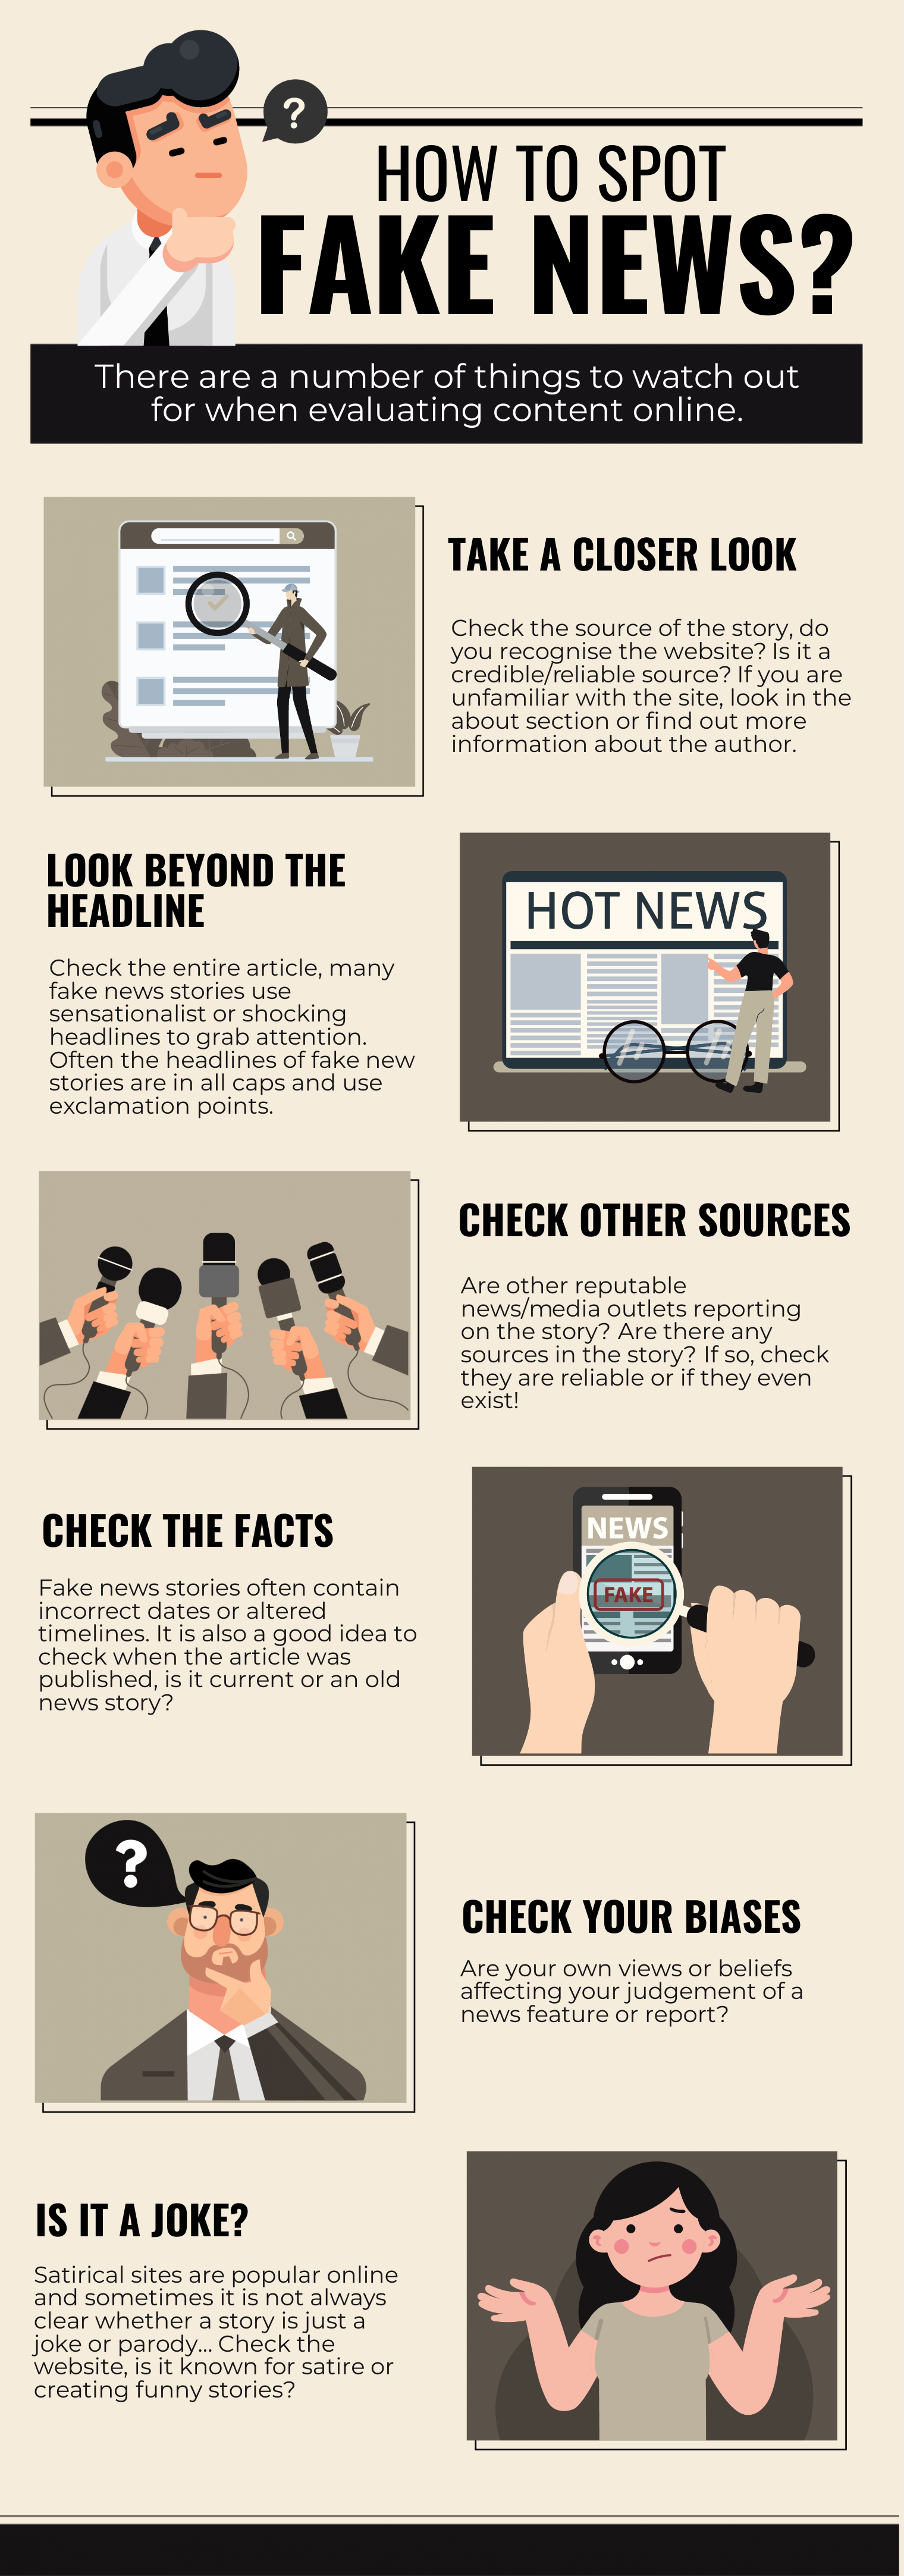 An infographic about how to spot fake news